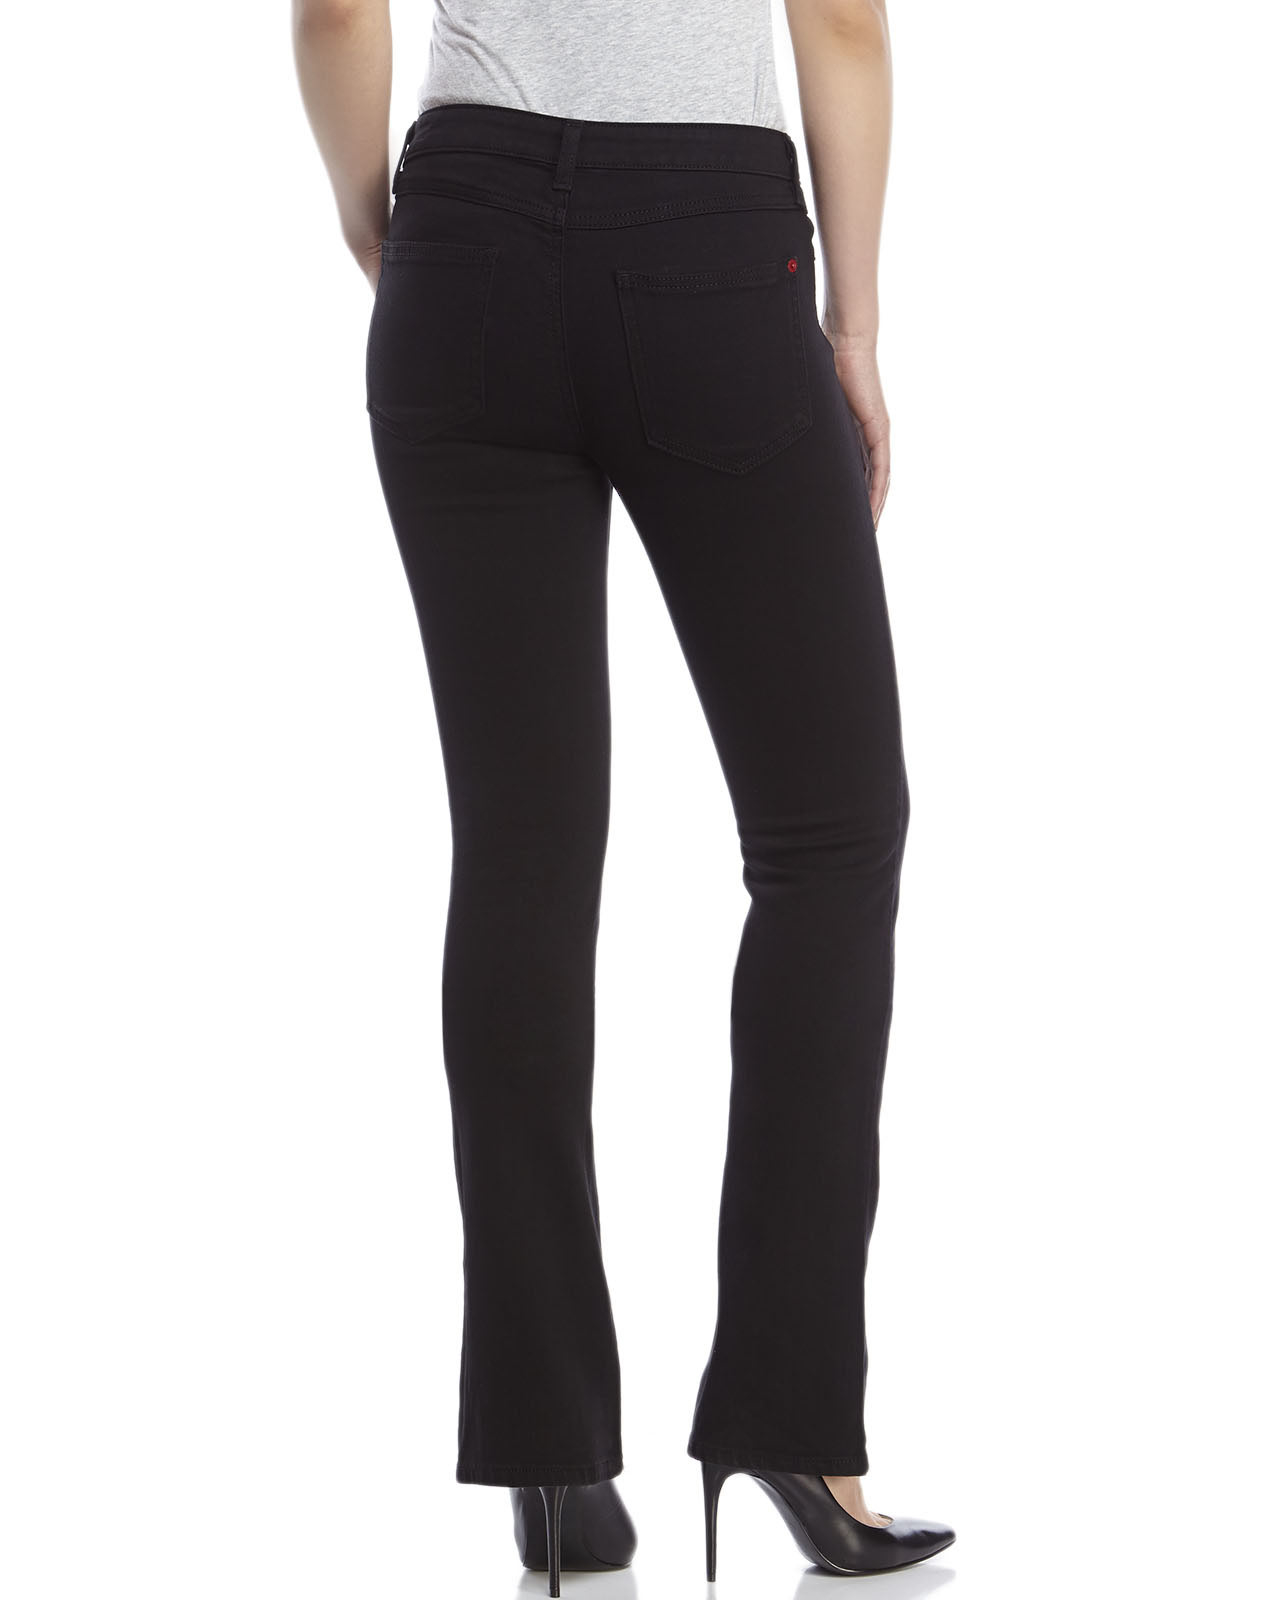 Spanx Black The Slim-X Slim Bootcut Jeans in Black | Lyst